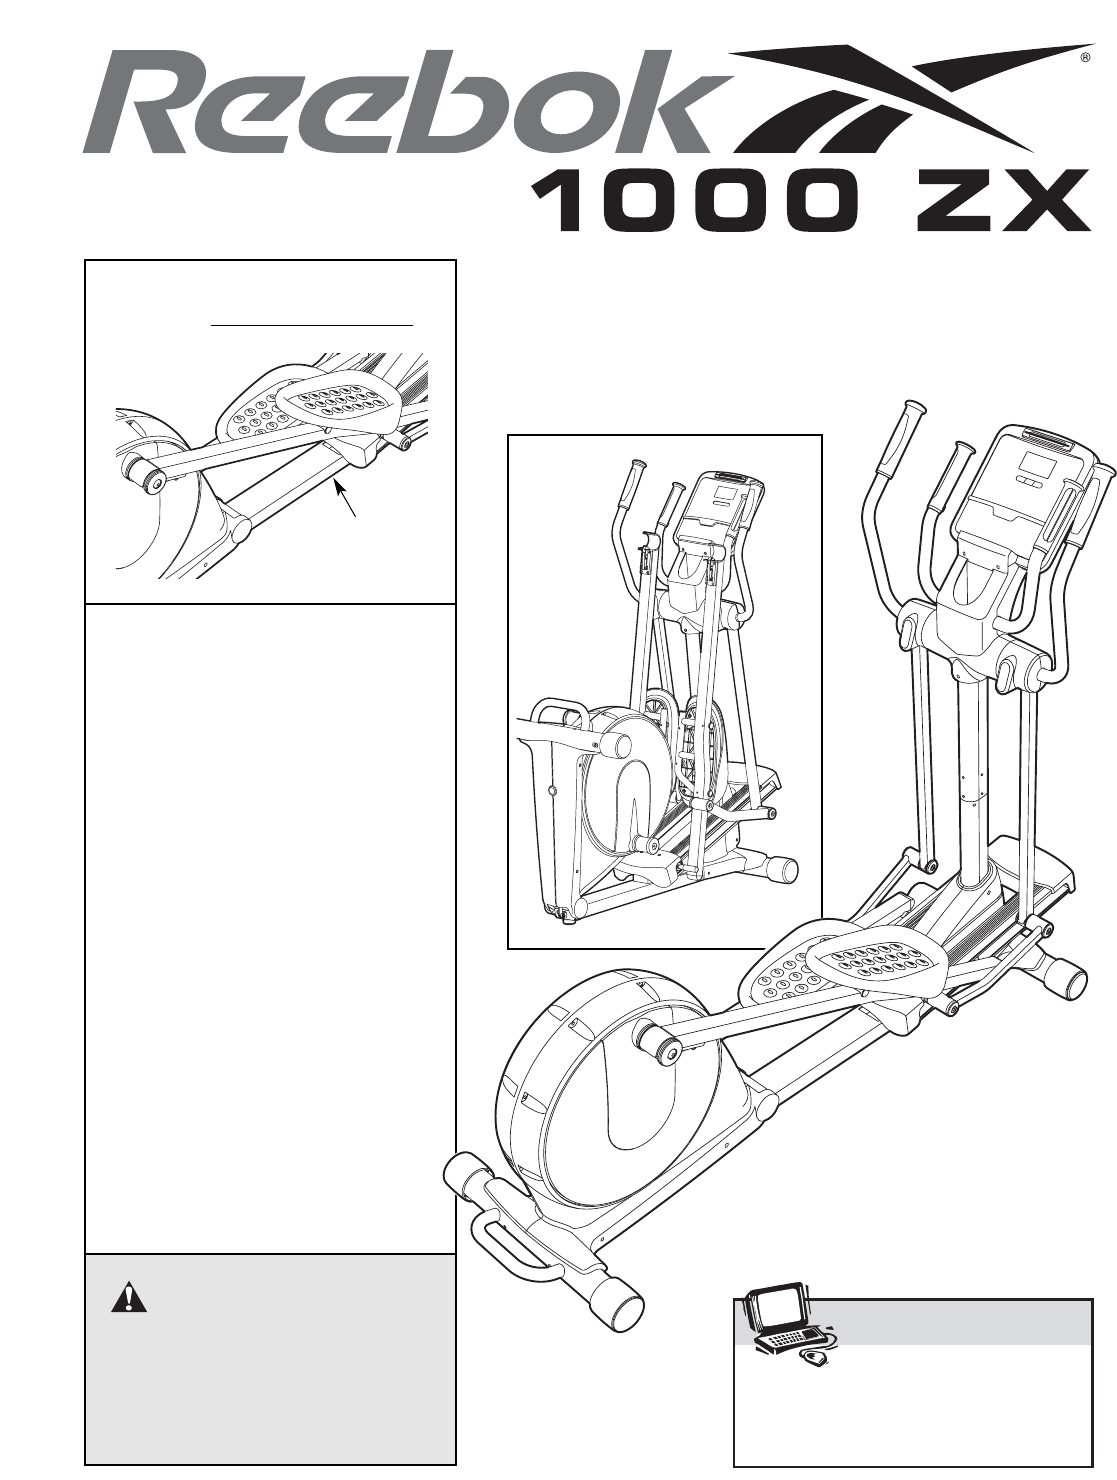 Reebok Fitness Home Gym RBEL9906.1 User Guide